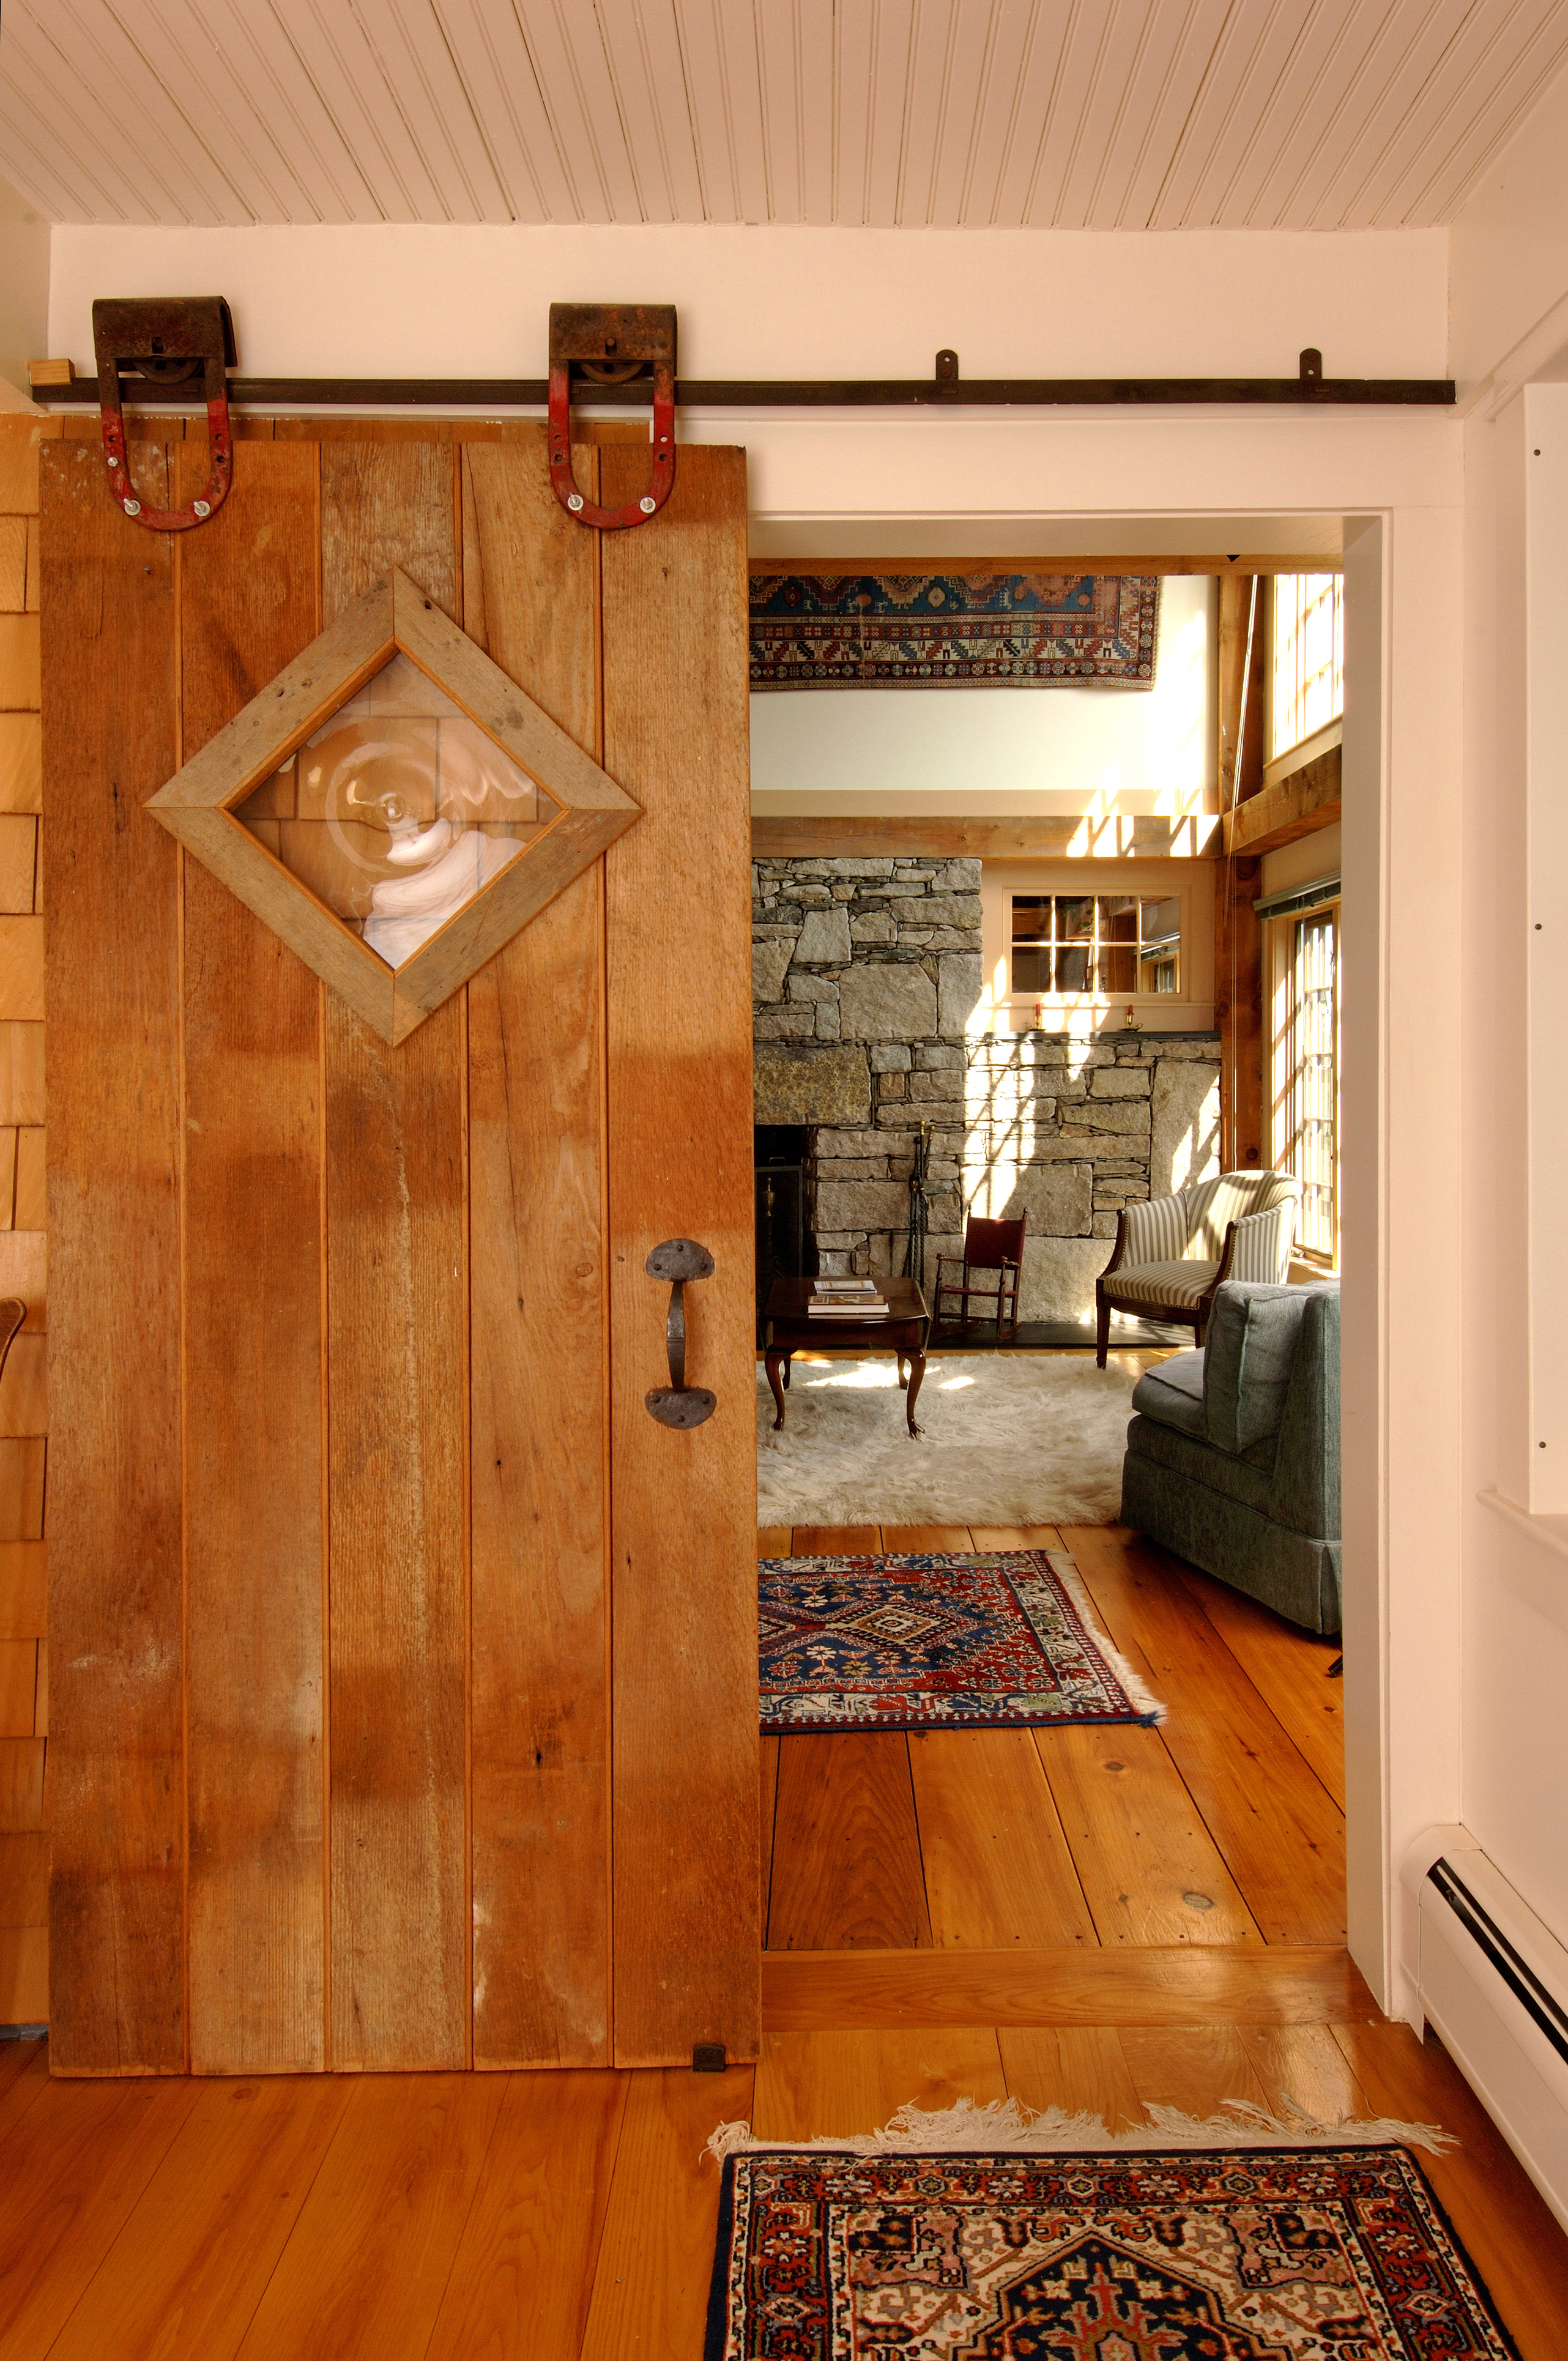 How To Make A Rustic Sliding Barn Door For Your Home